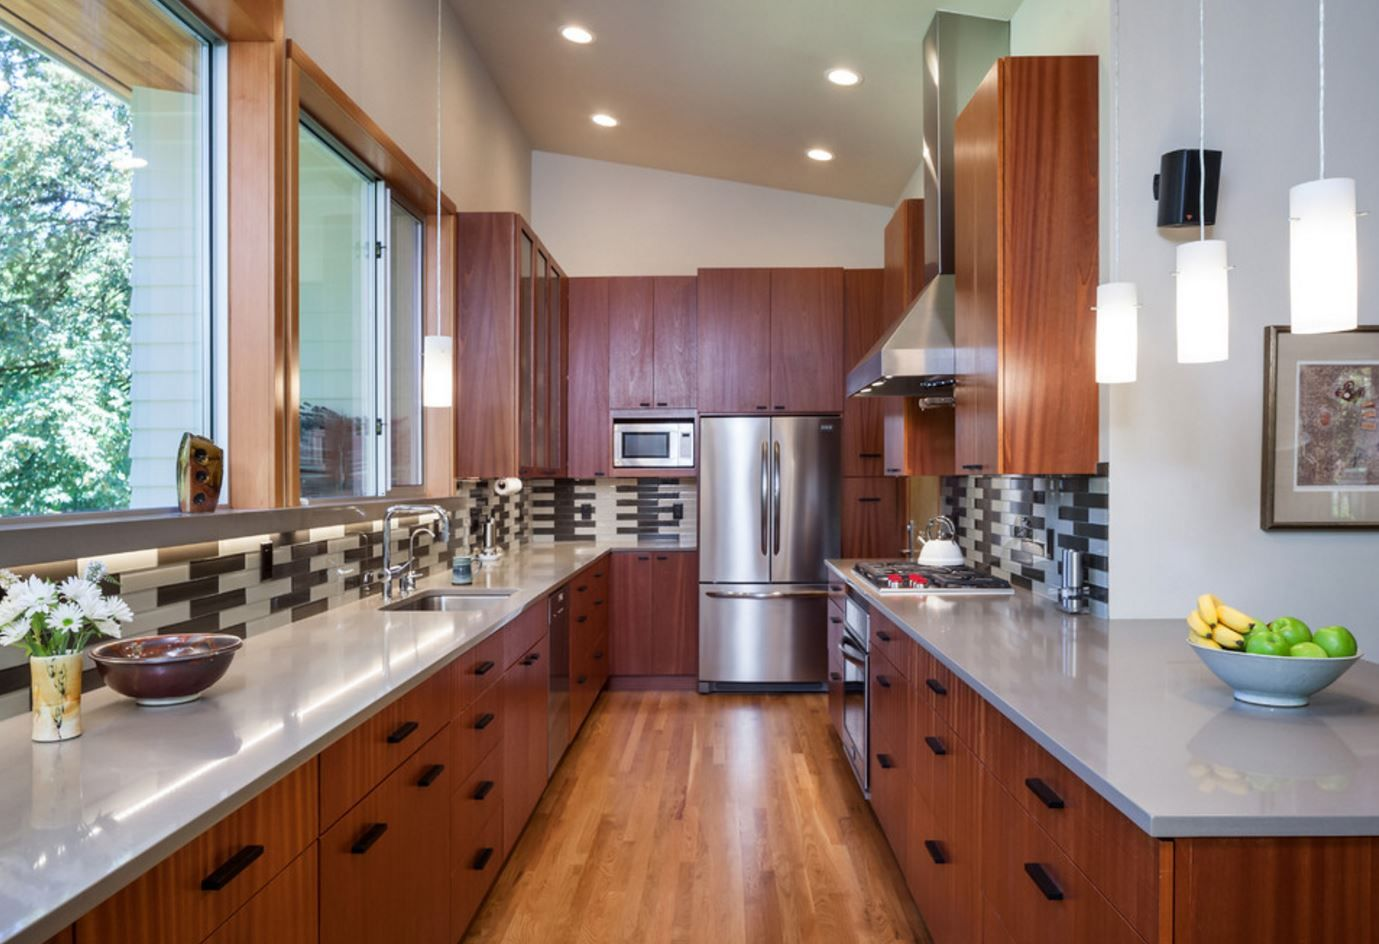 Portland Kitchen Design Expertly Builtright Arm Construction This Portland Kitchen